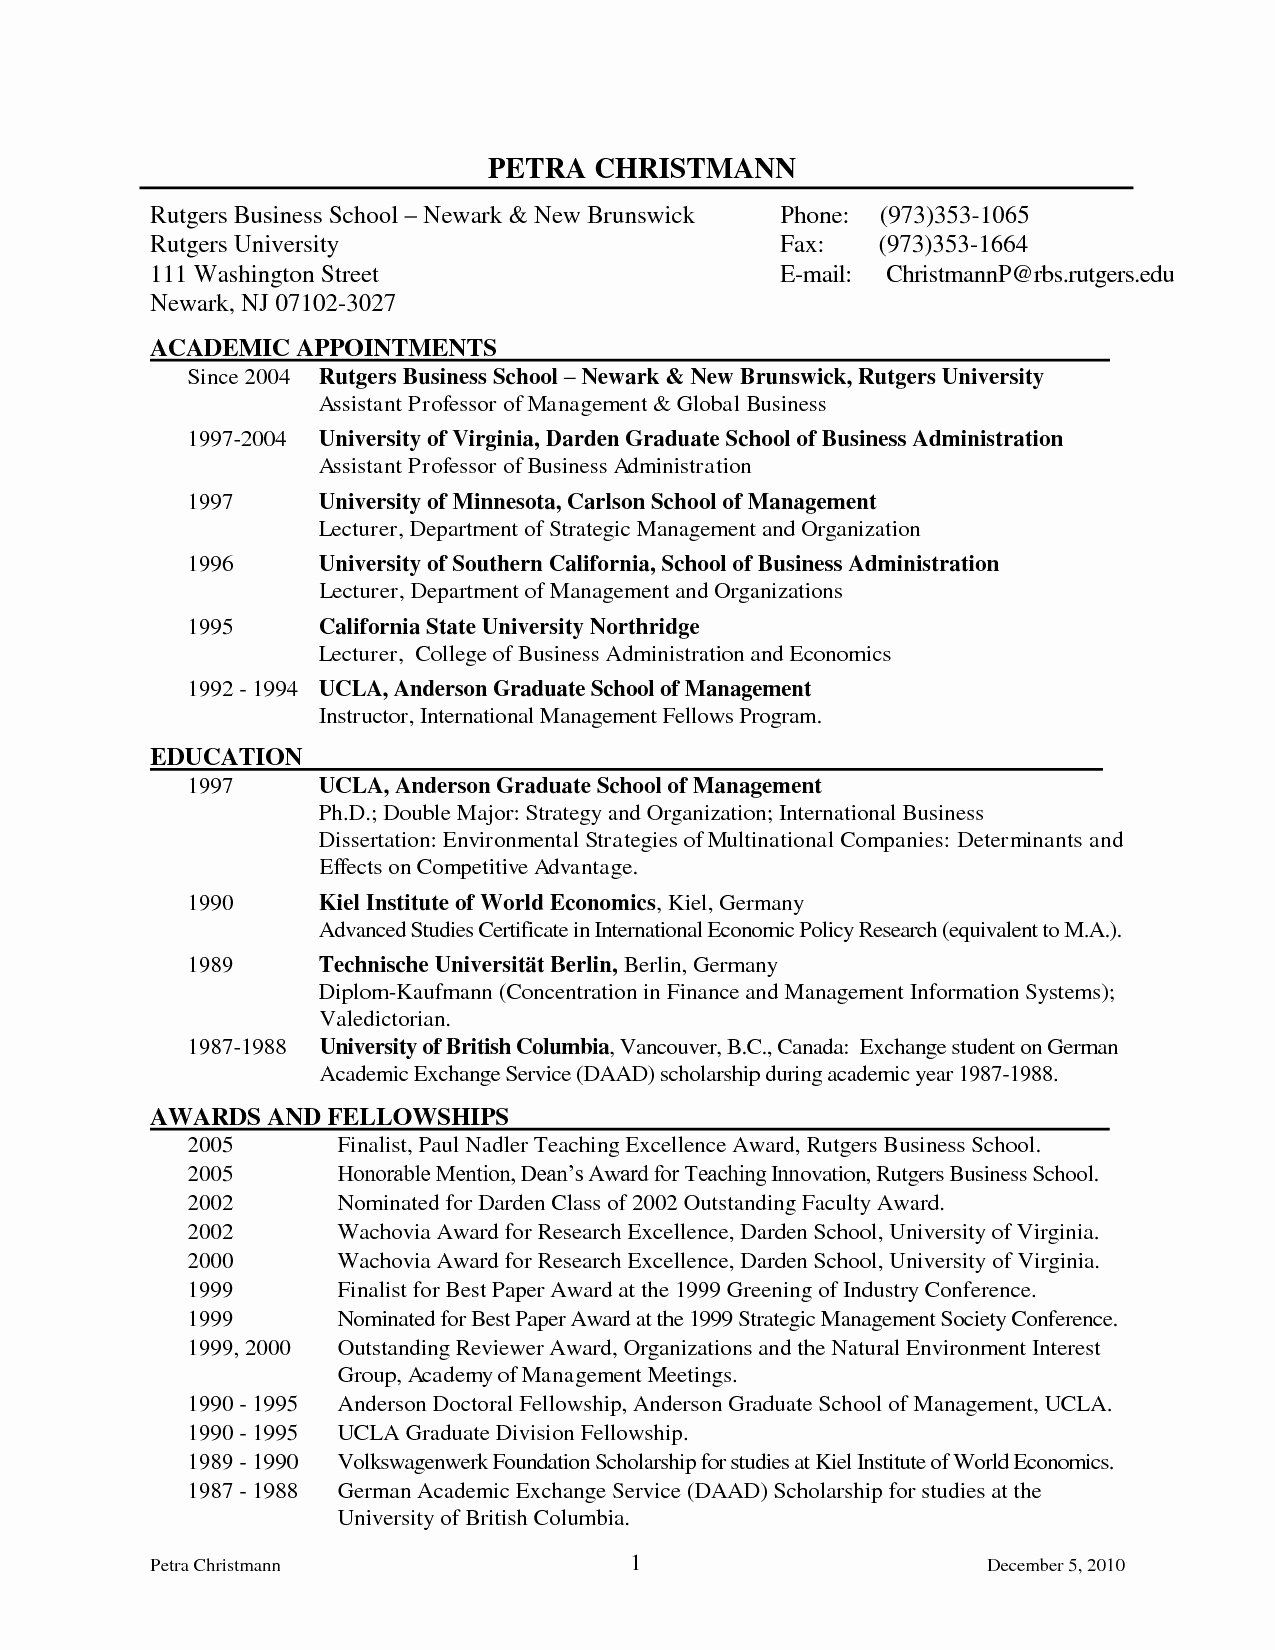 Rutgers Business School Resume Template Beautiful 13 Rutgers Business School Resume Template Ideas Business Administration Business Resume Resume Template